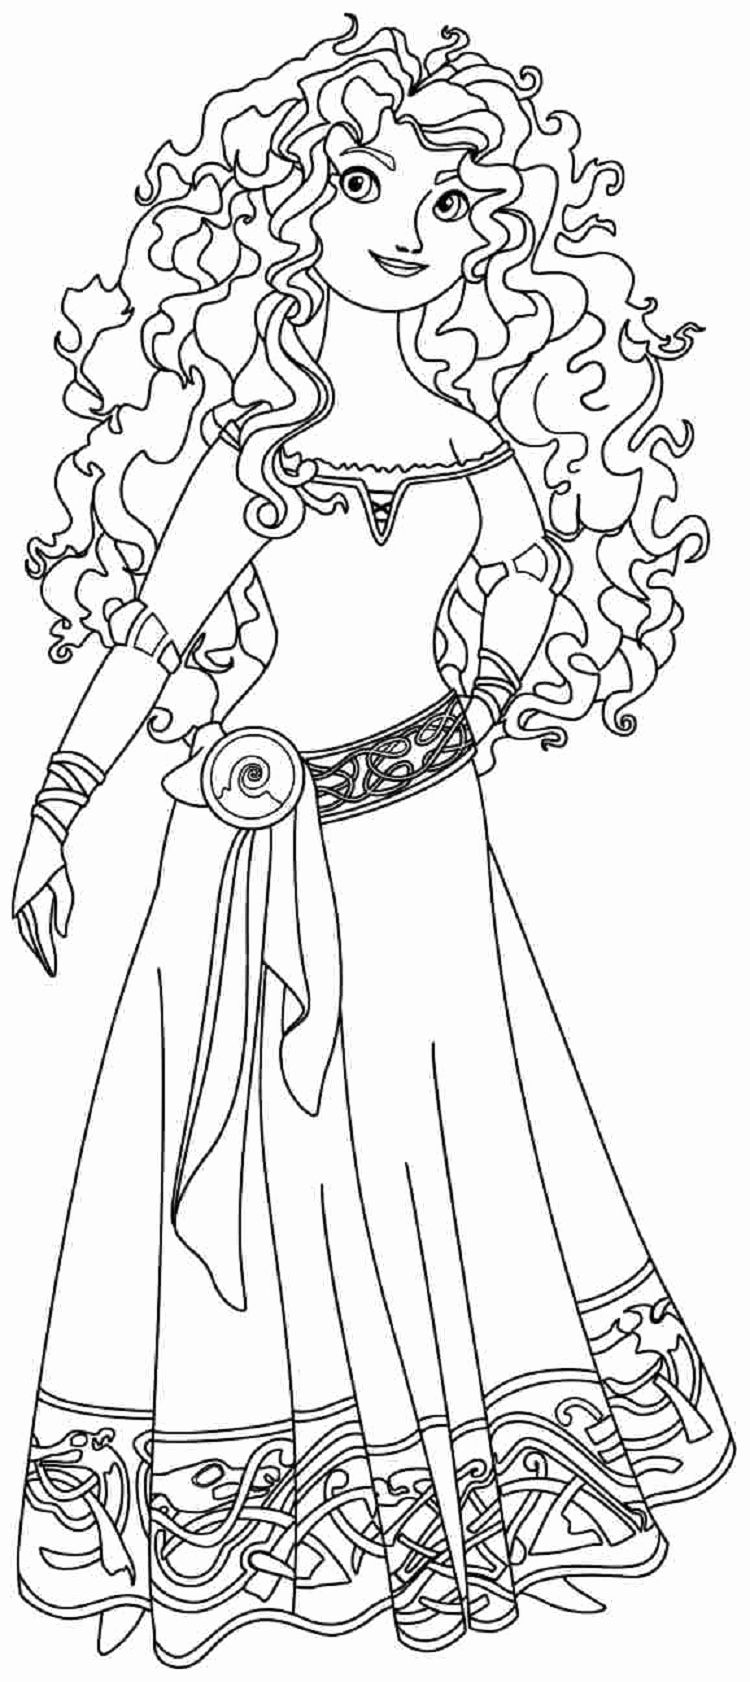 Disney Princess Merida Coloring Pages For Kids In 2020 Disney Princess Coloring Pages Disney Coloring Pages Printables Princess Coloring Pages